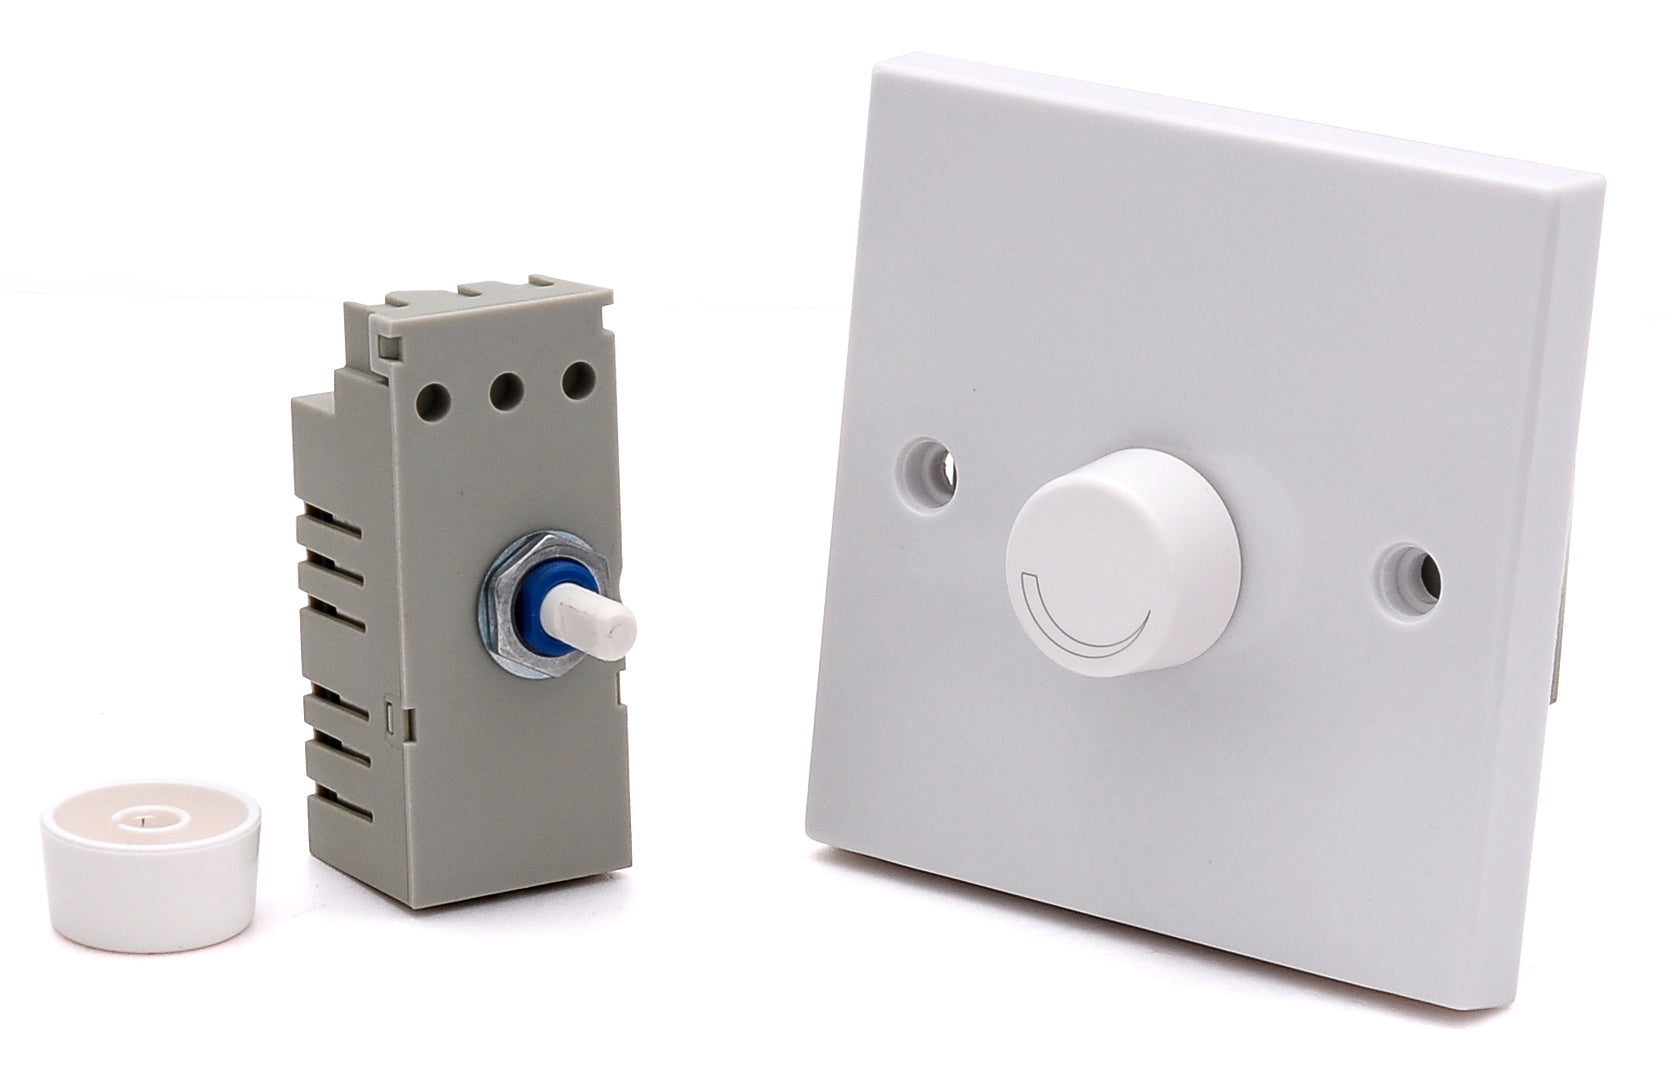 LED Dimmer Switch - Trailing Edge Phase Control